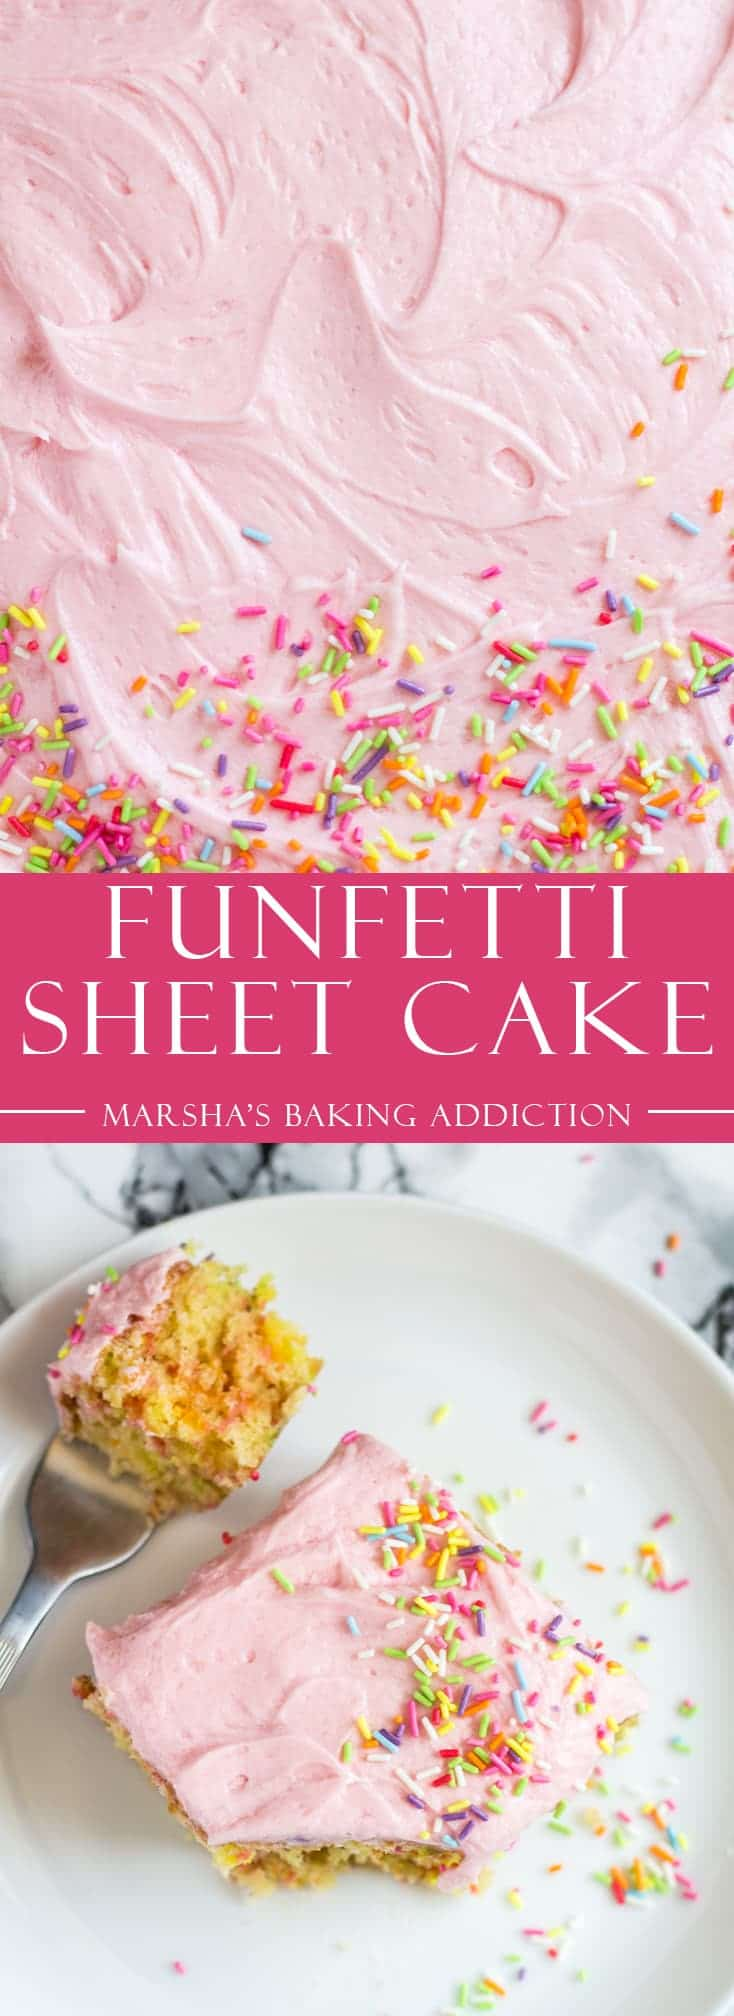 A Pinterest image of Funfetti Sheet Cake with text overlay.